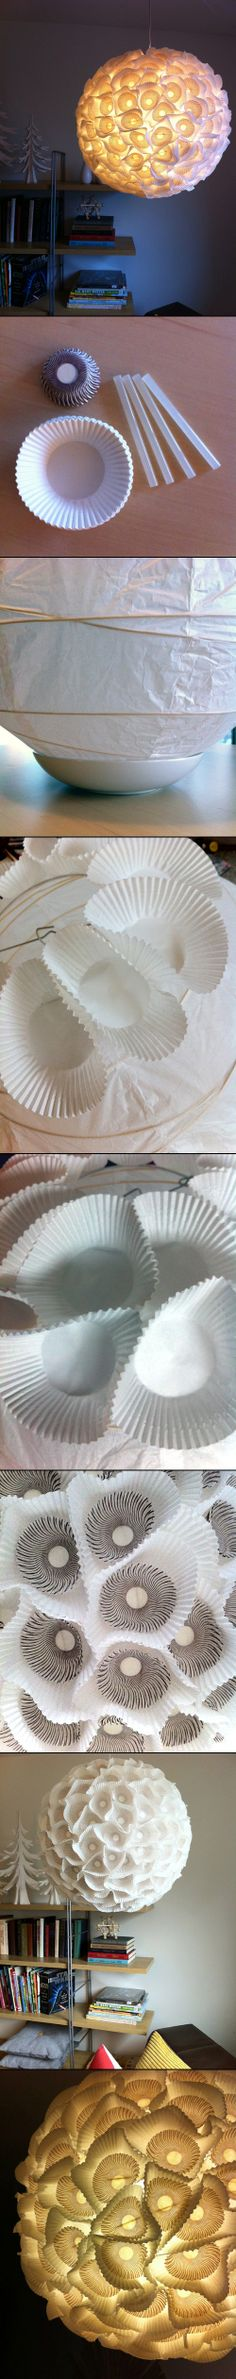 DIY PROJECT: SCULPTURAL PAPER ORB LIGHTS